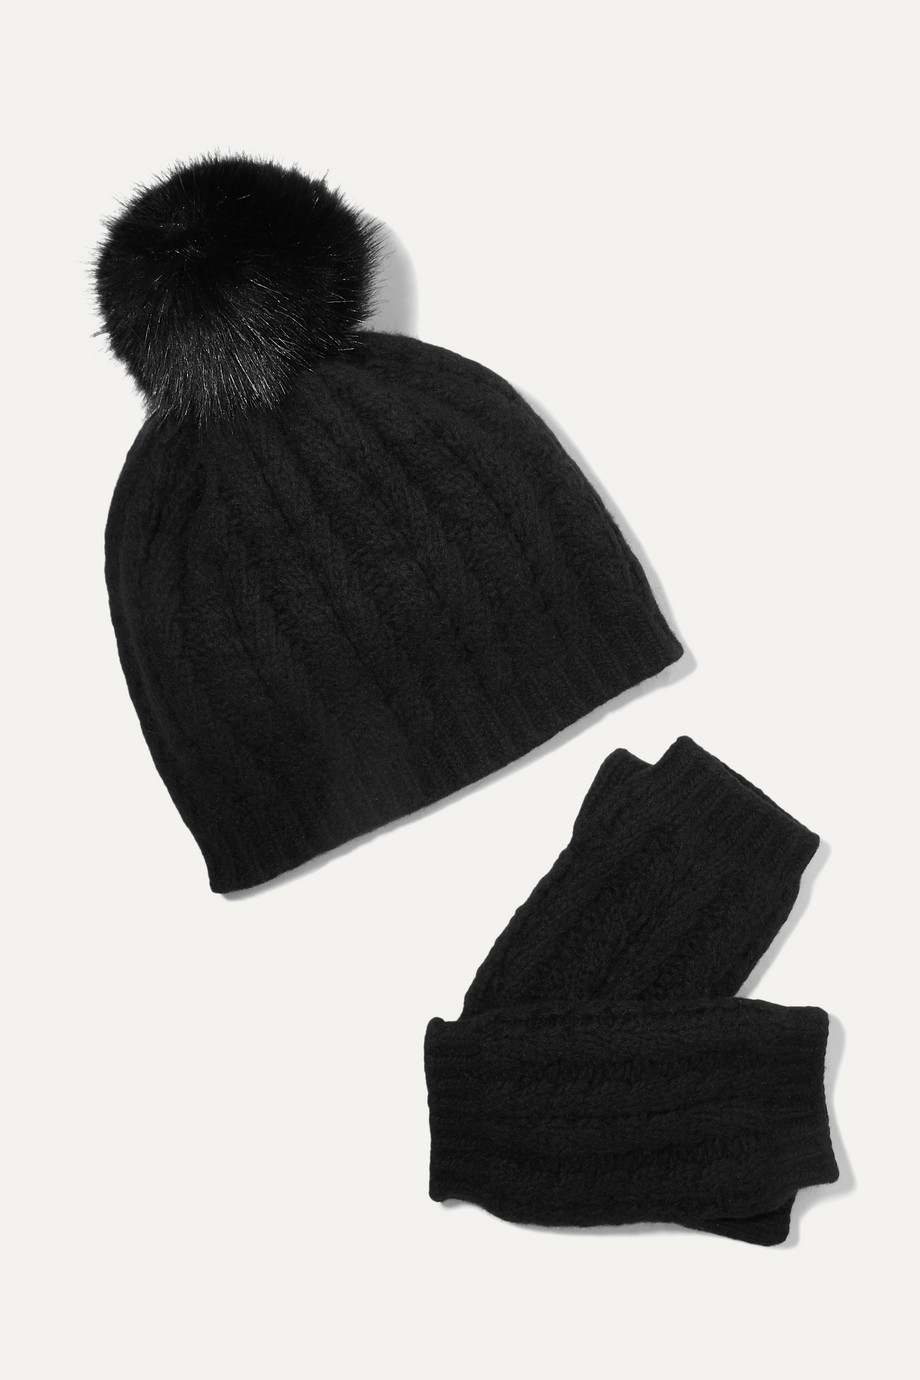 PORTOLANO Faux fur-trimmed cable-knit cashmere beanie and fingerless gloves set